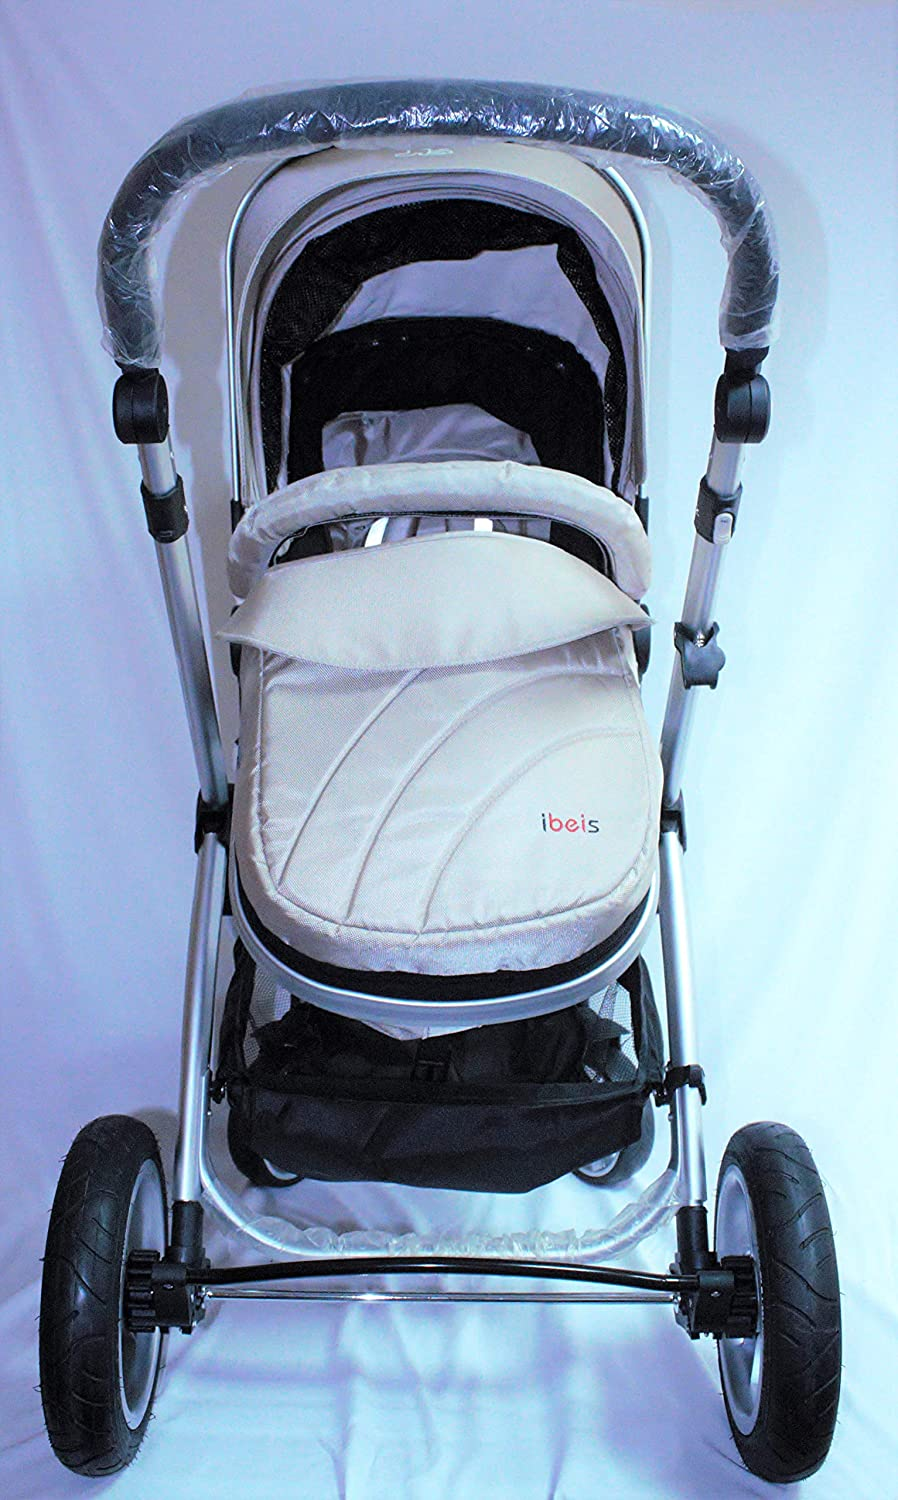 High Quality Baby Stroller IBEIS Prams 2 in 1 for Newborns European Folding Baby Carriage for 0 to 36 Months (Sand) IBEIS HONGKONG LIMITED A09